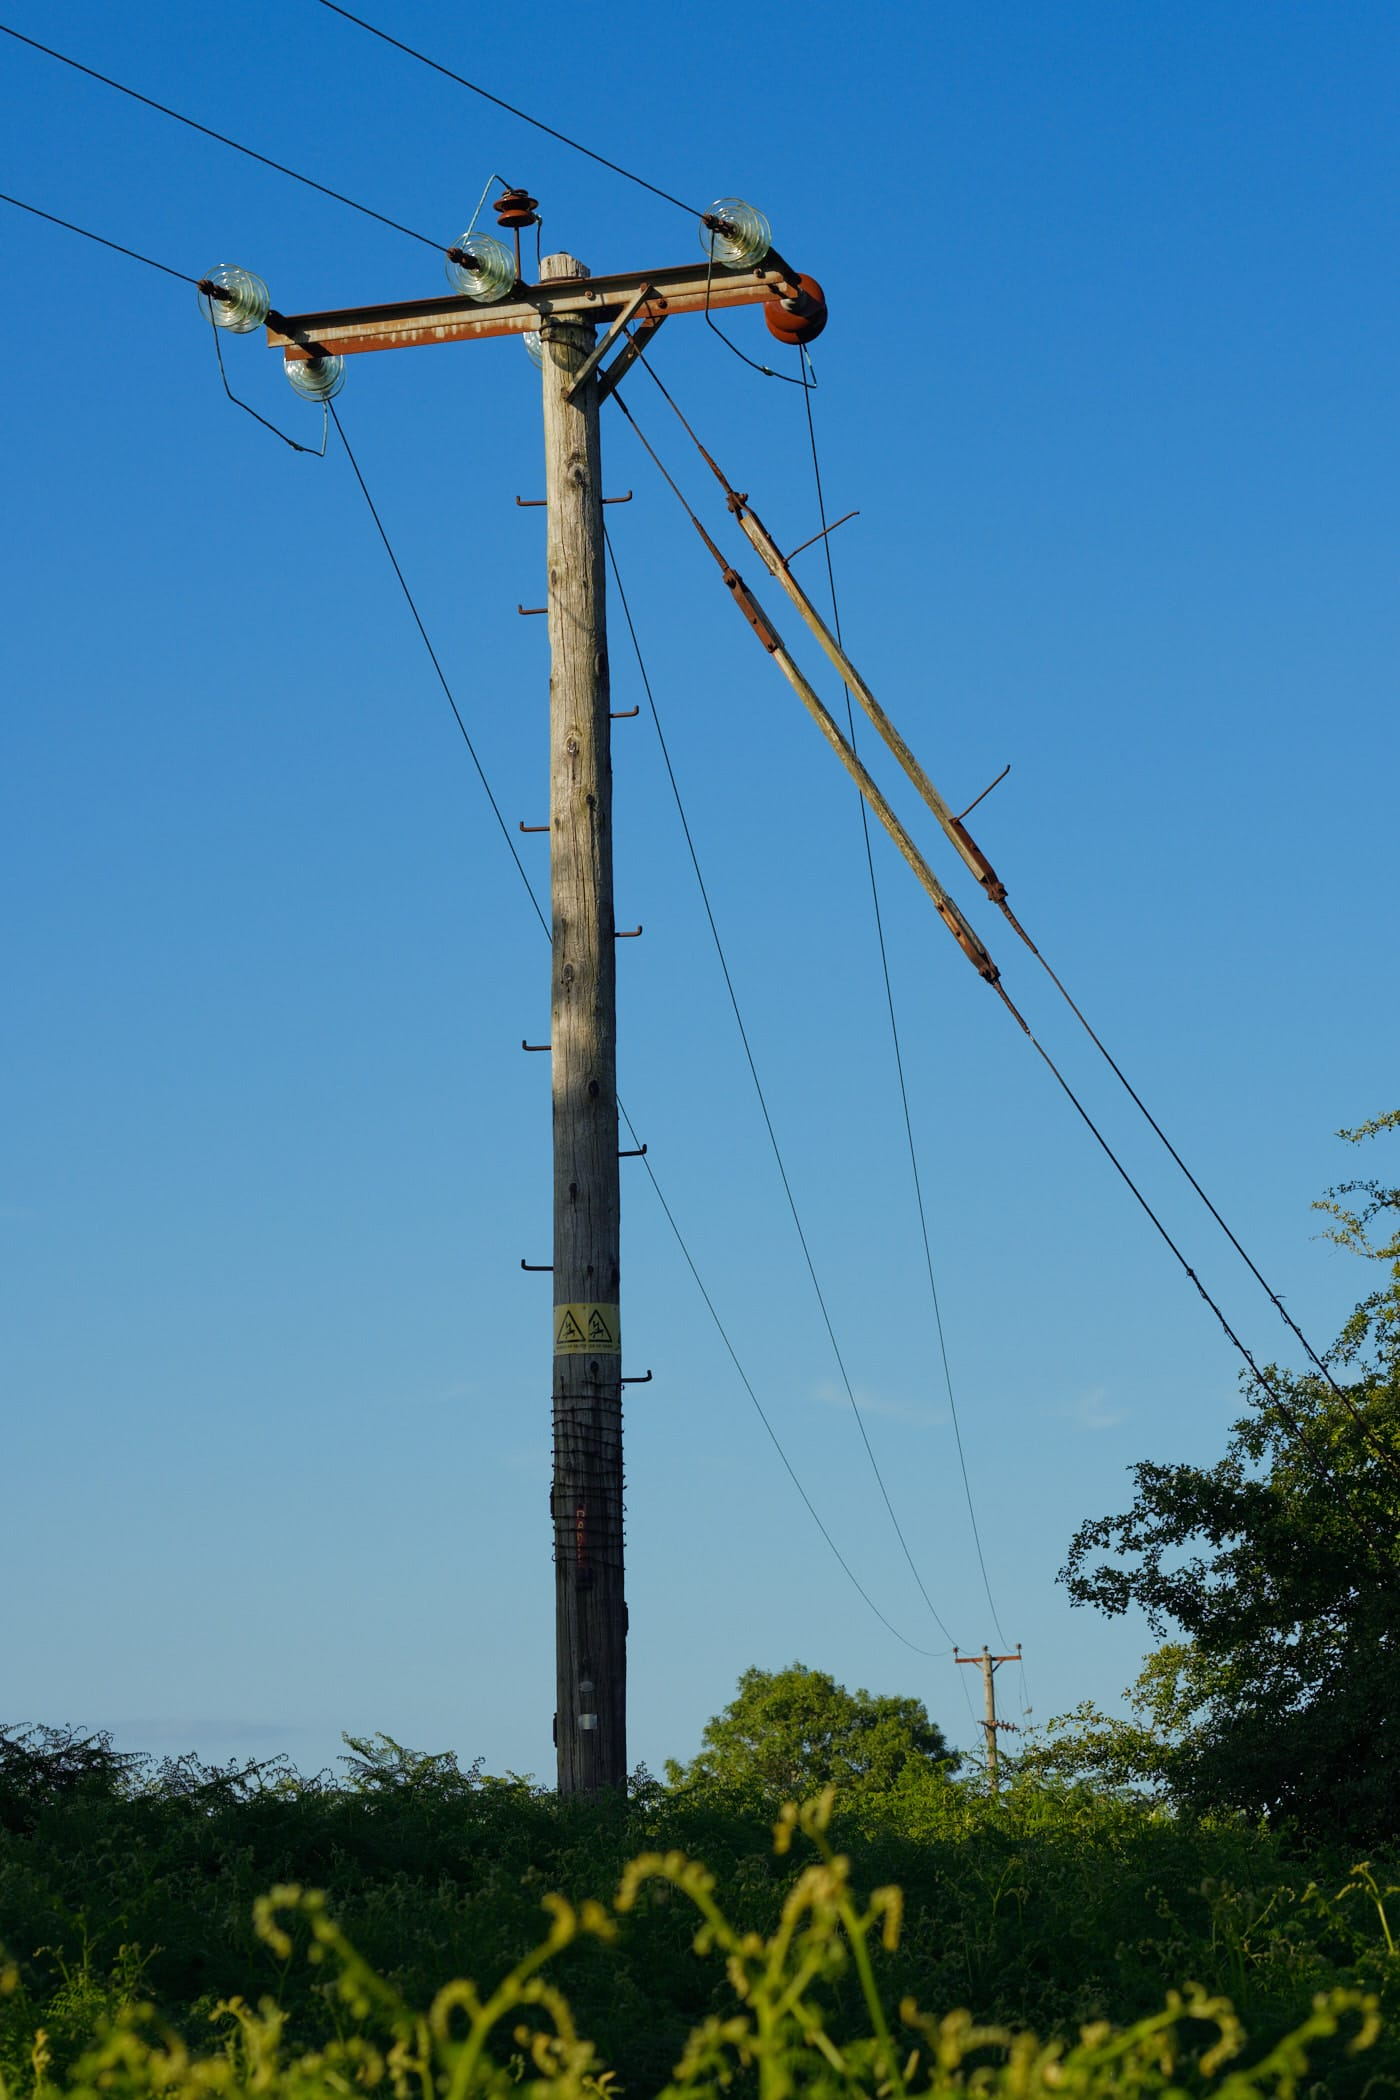 telegraph pole and wires